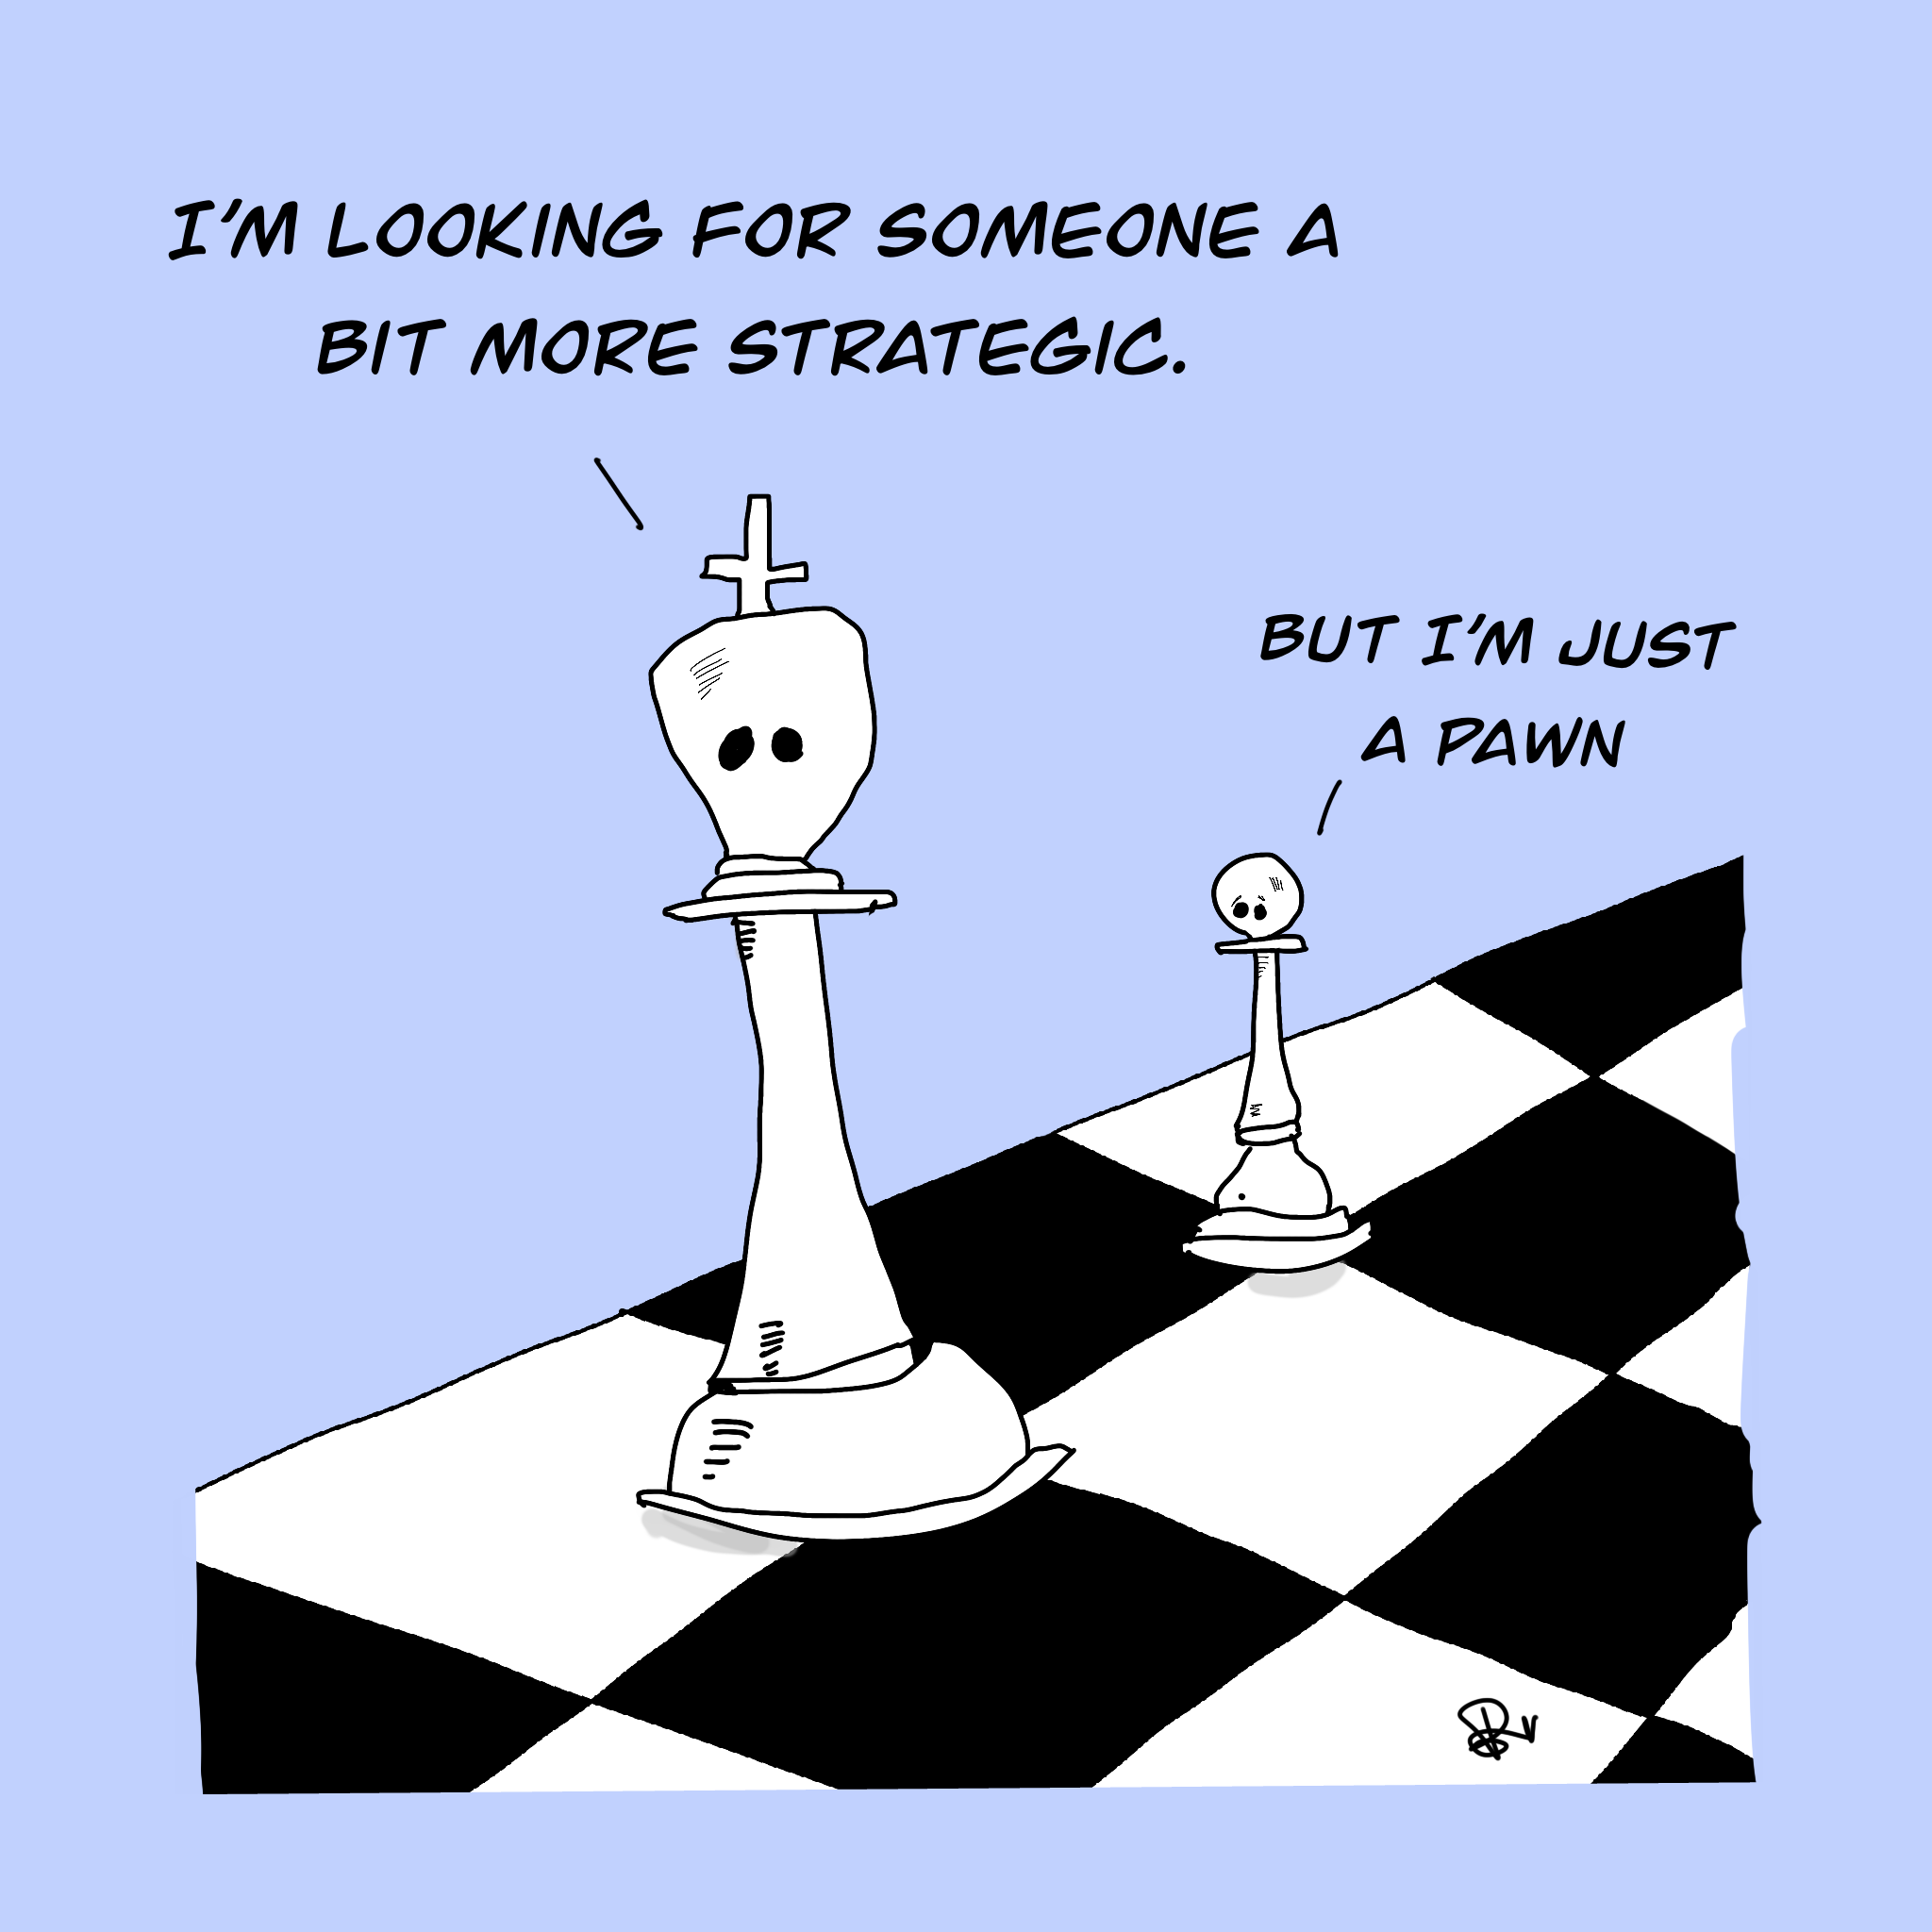 Cartoon of Chess Pieces speaking. King piece says